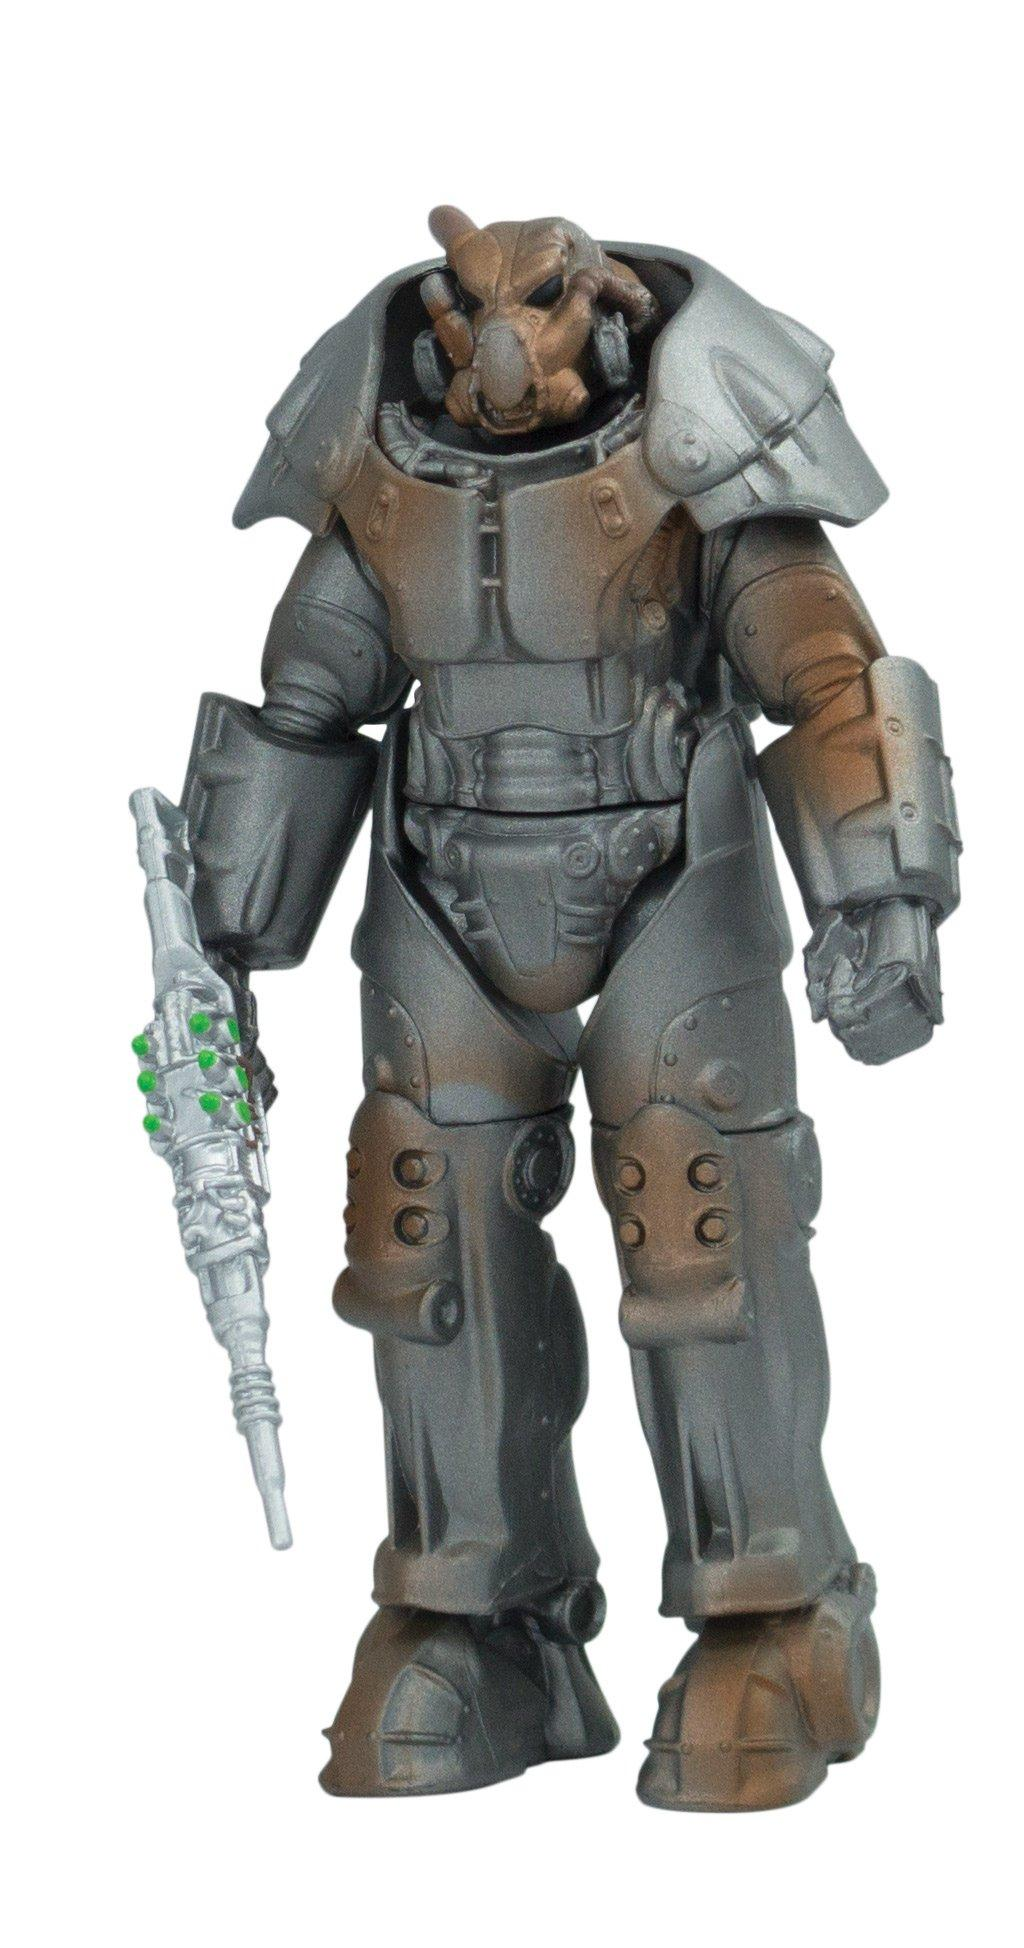 Fallout 4 Inch X 01 Armor Figure Only At Gamestop Gamestop